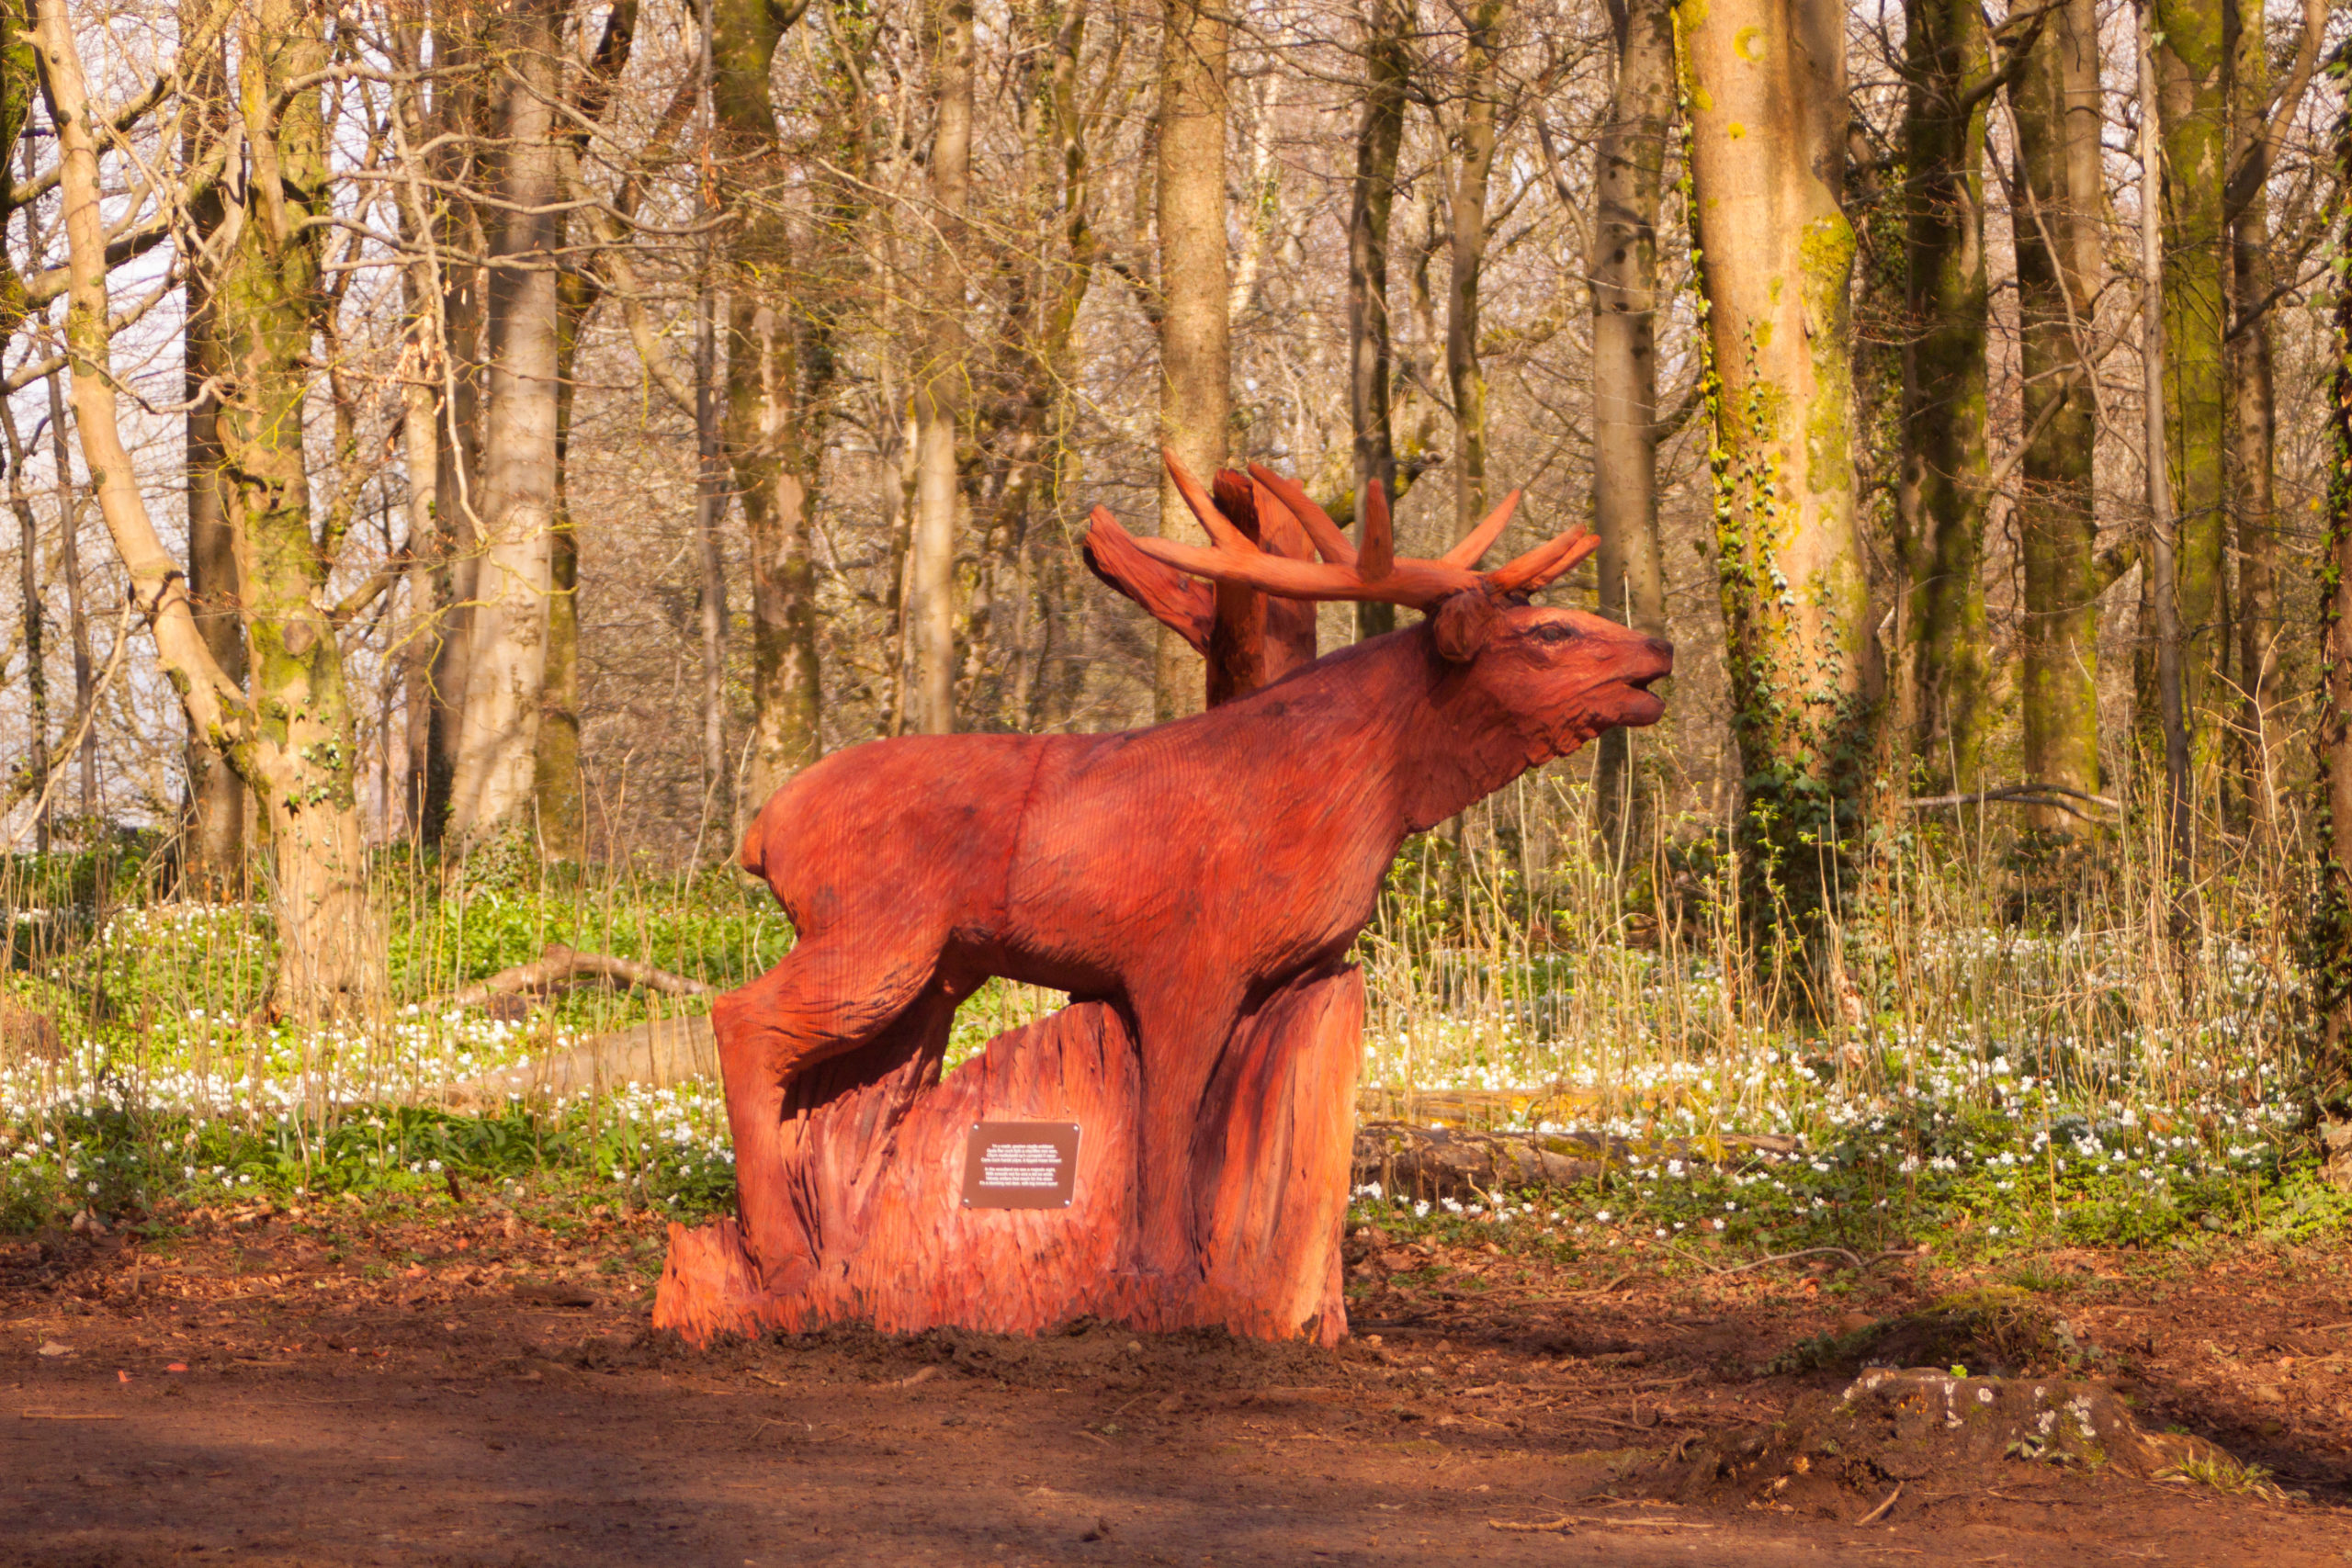 Simon O'Rourkes fforest fawr woodland sculpture trail: A Red Deer. Lifesized, created with chainsaws from redwood